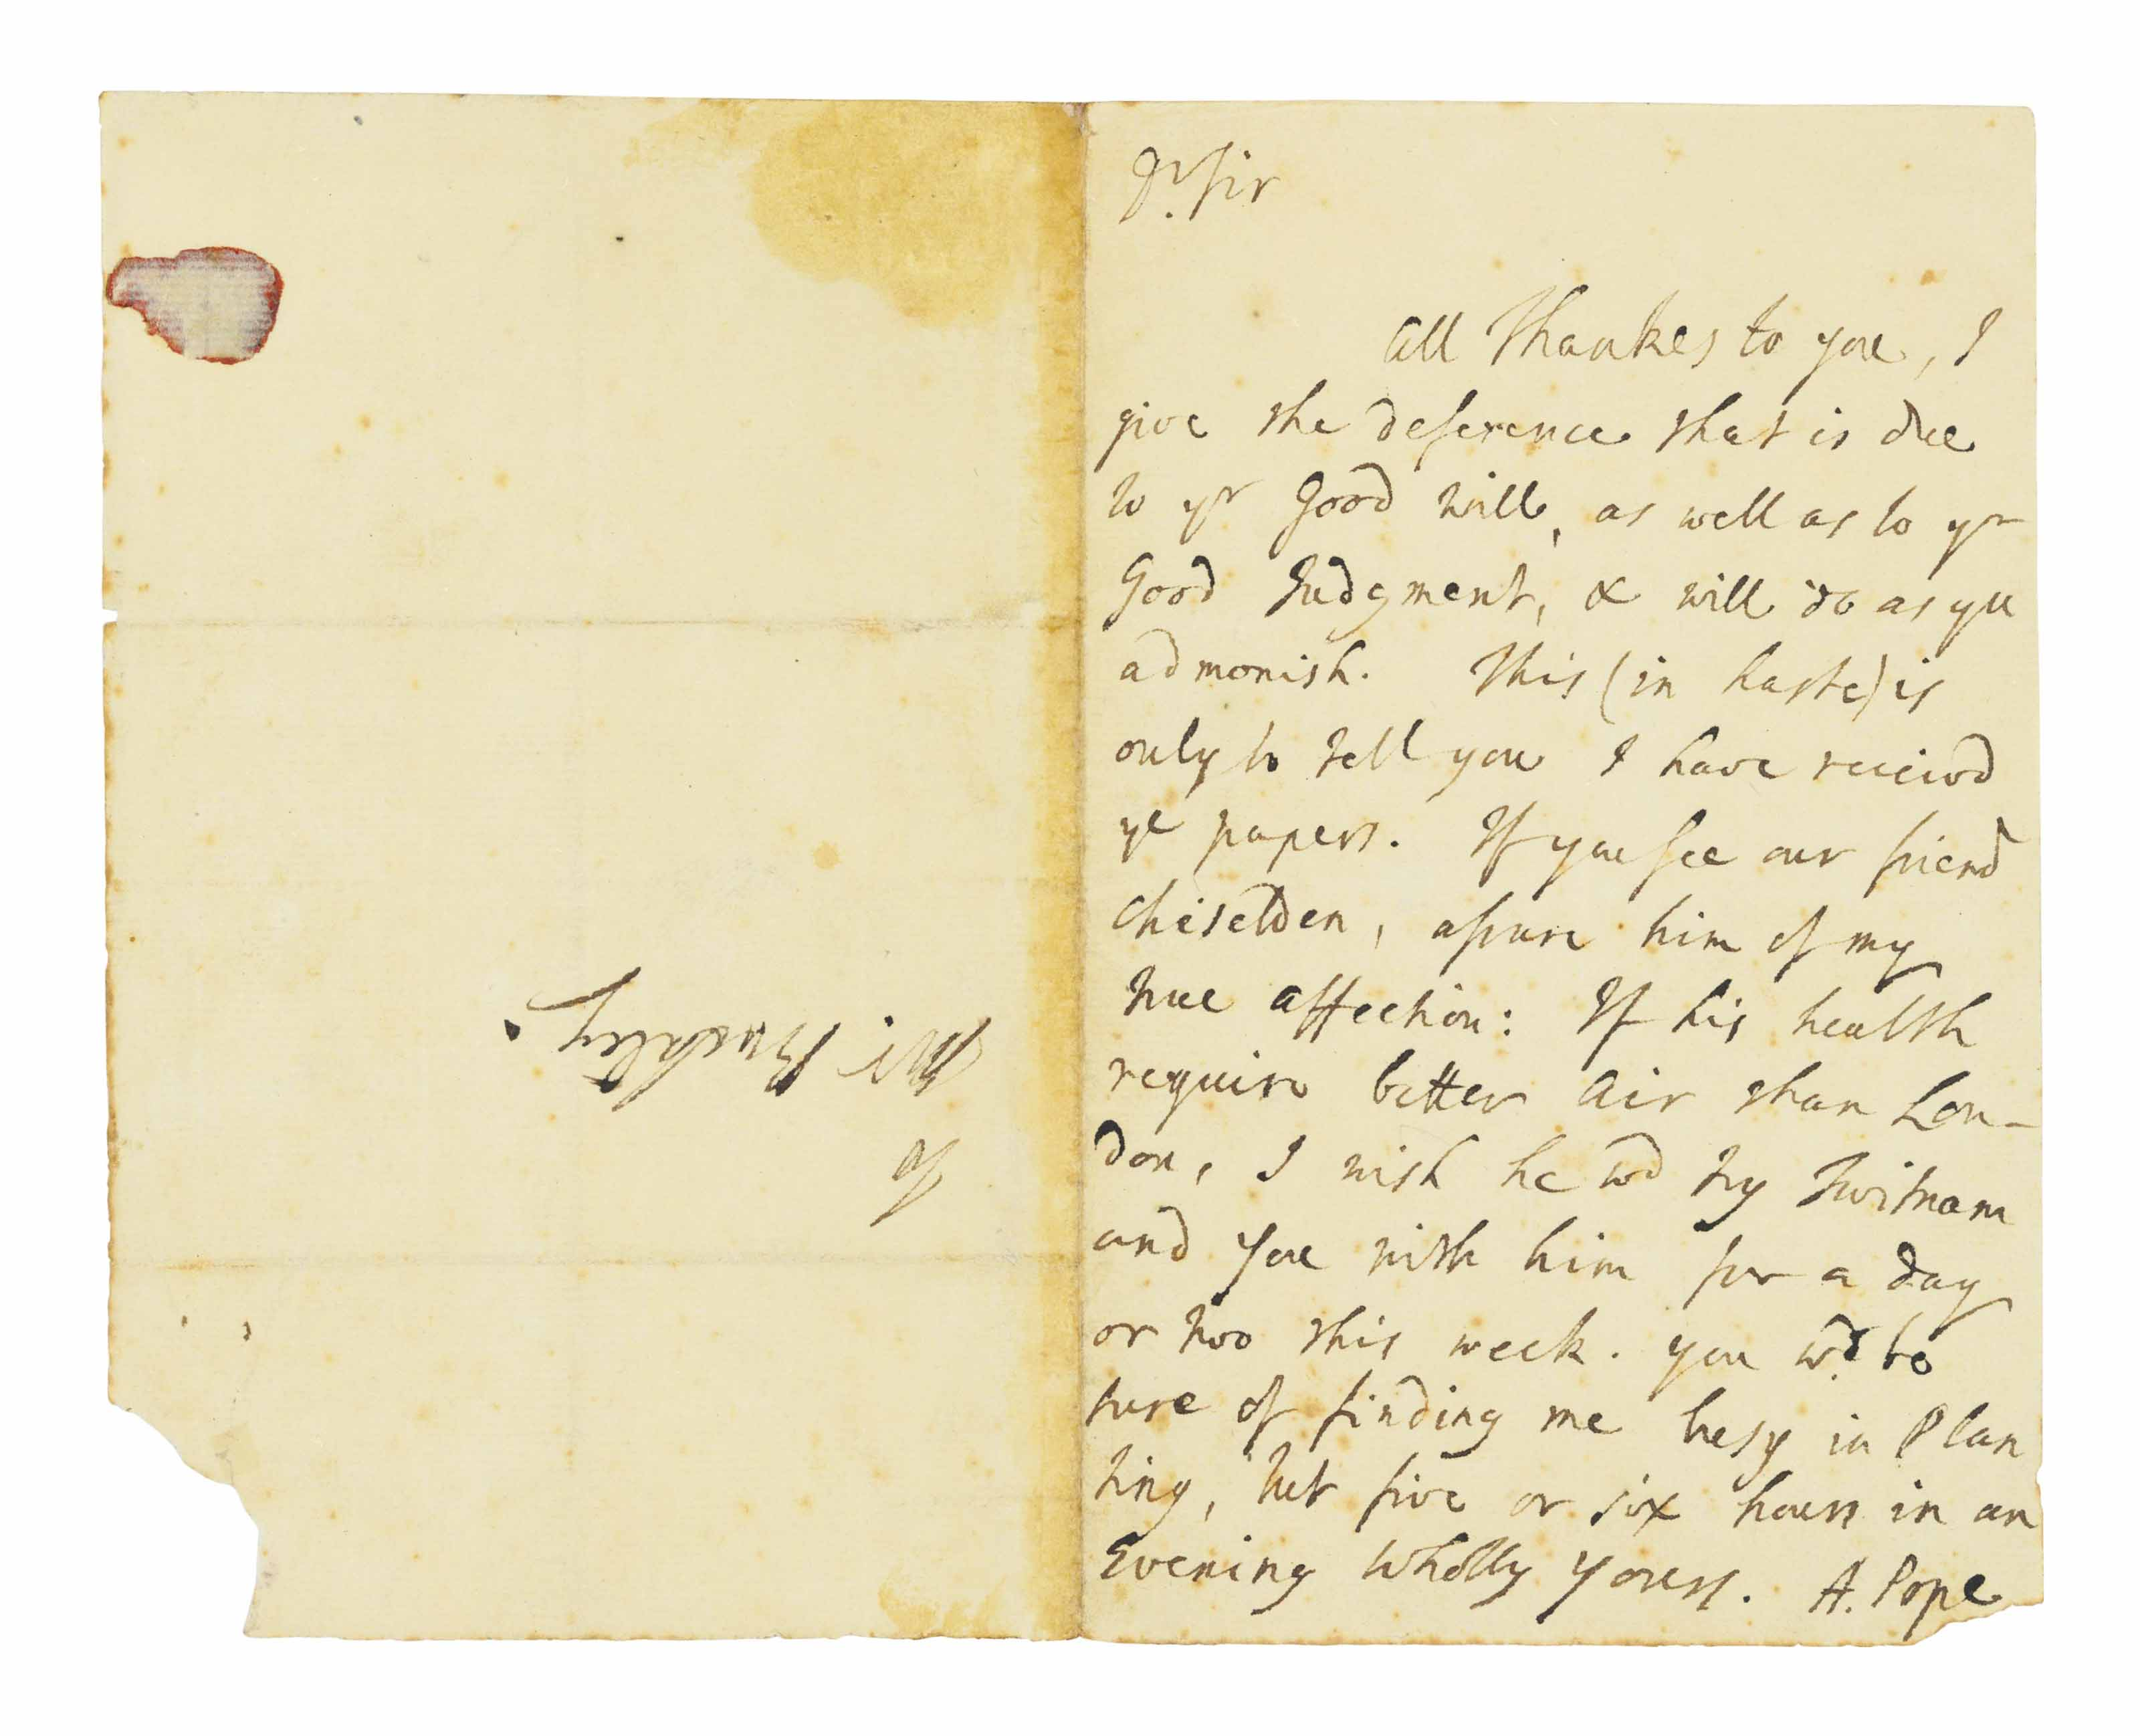 """POPE, Alexander. Autograph letter signed (""""A. Pope"""") to [Samuel] Buckley, [Twickenham, undated, but probably 1735 or later], one page, 8° (179 x 112mm), on a bifolium."""